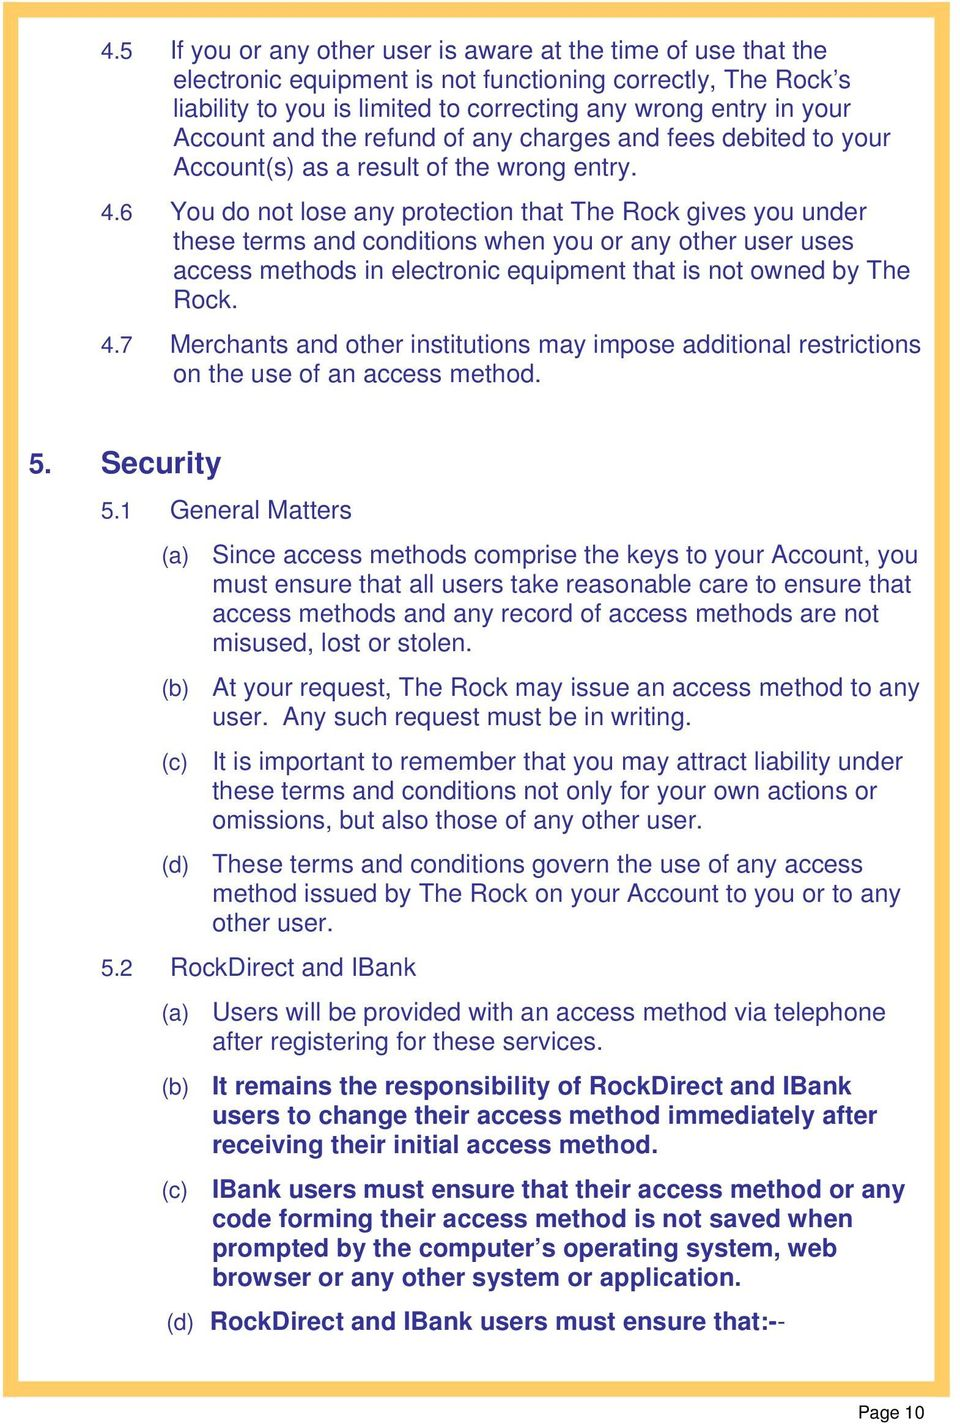 6 You do not lose any protection that The Rock gives you under these terms and conditions when you or any other user uses access methods in electronic equipment that is not owned by The Rock. 4.